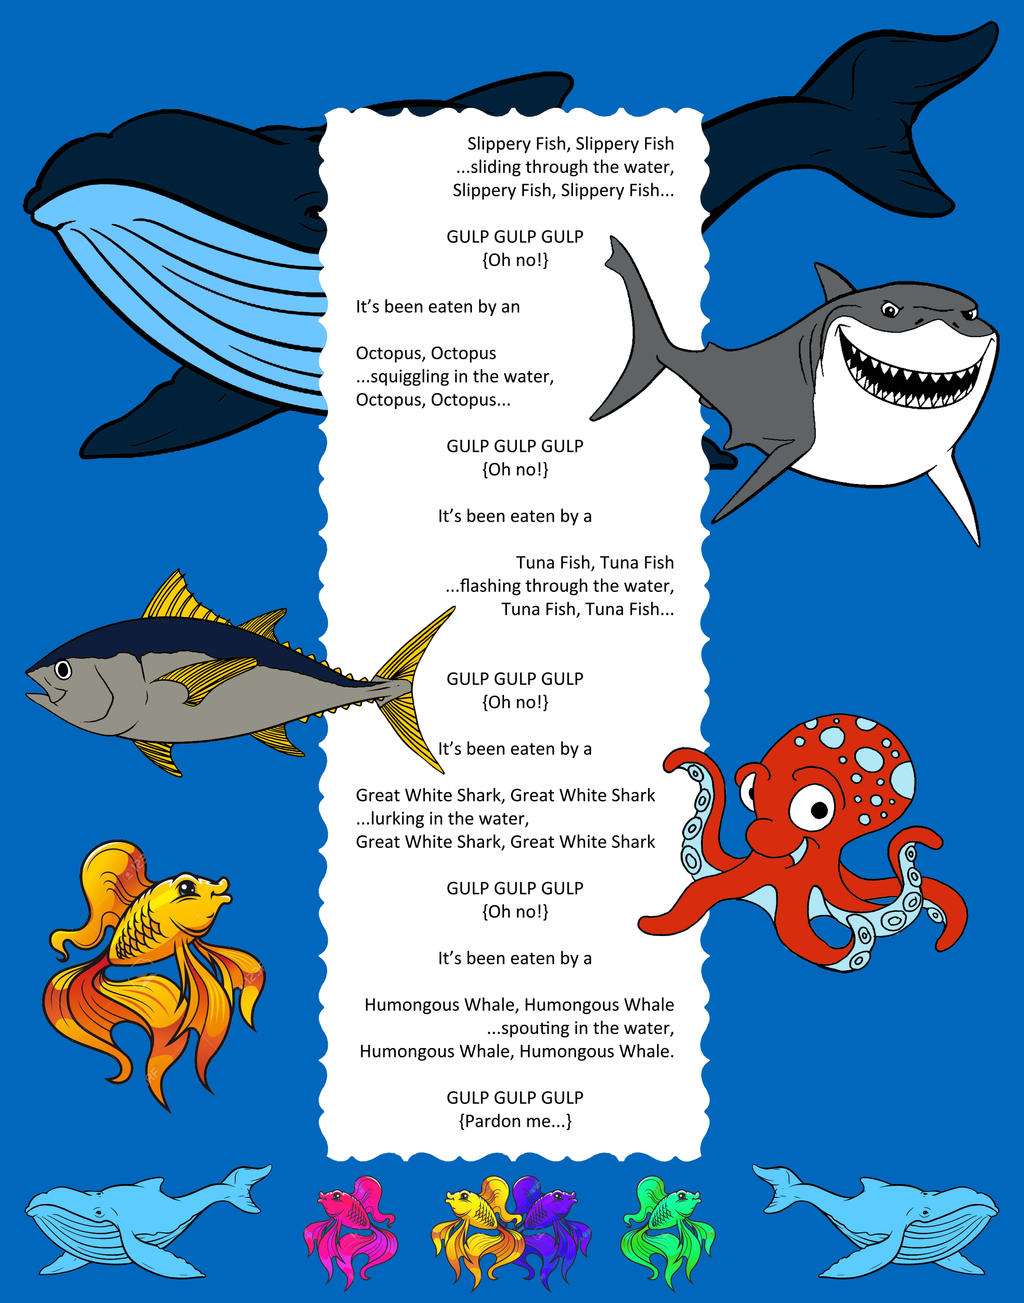 preschool shark song slippery fish song by nykol haebrd on deviantart 651